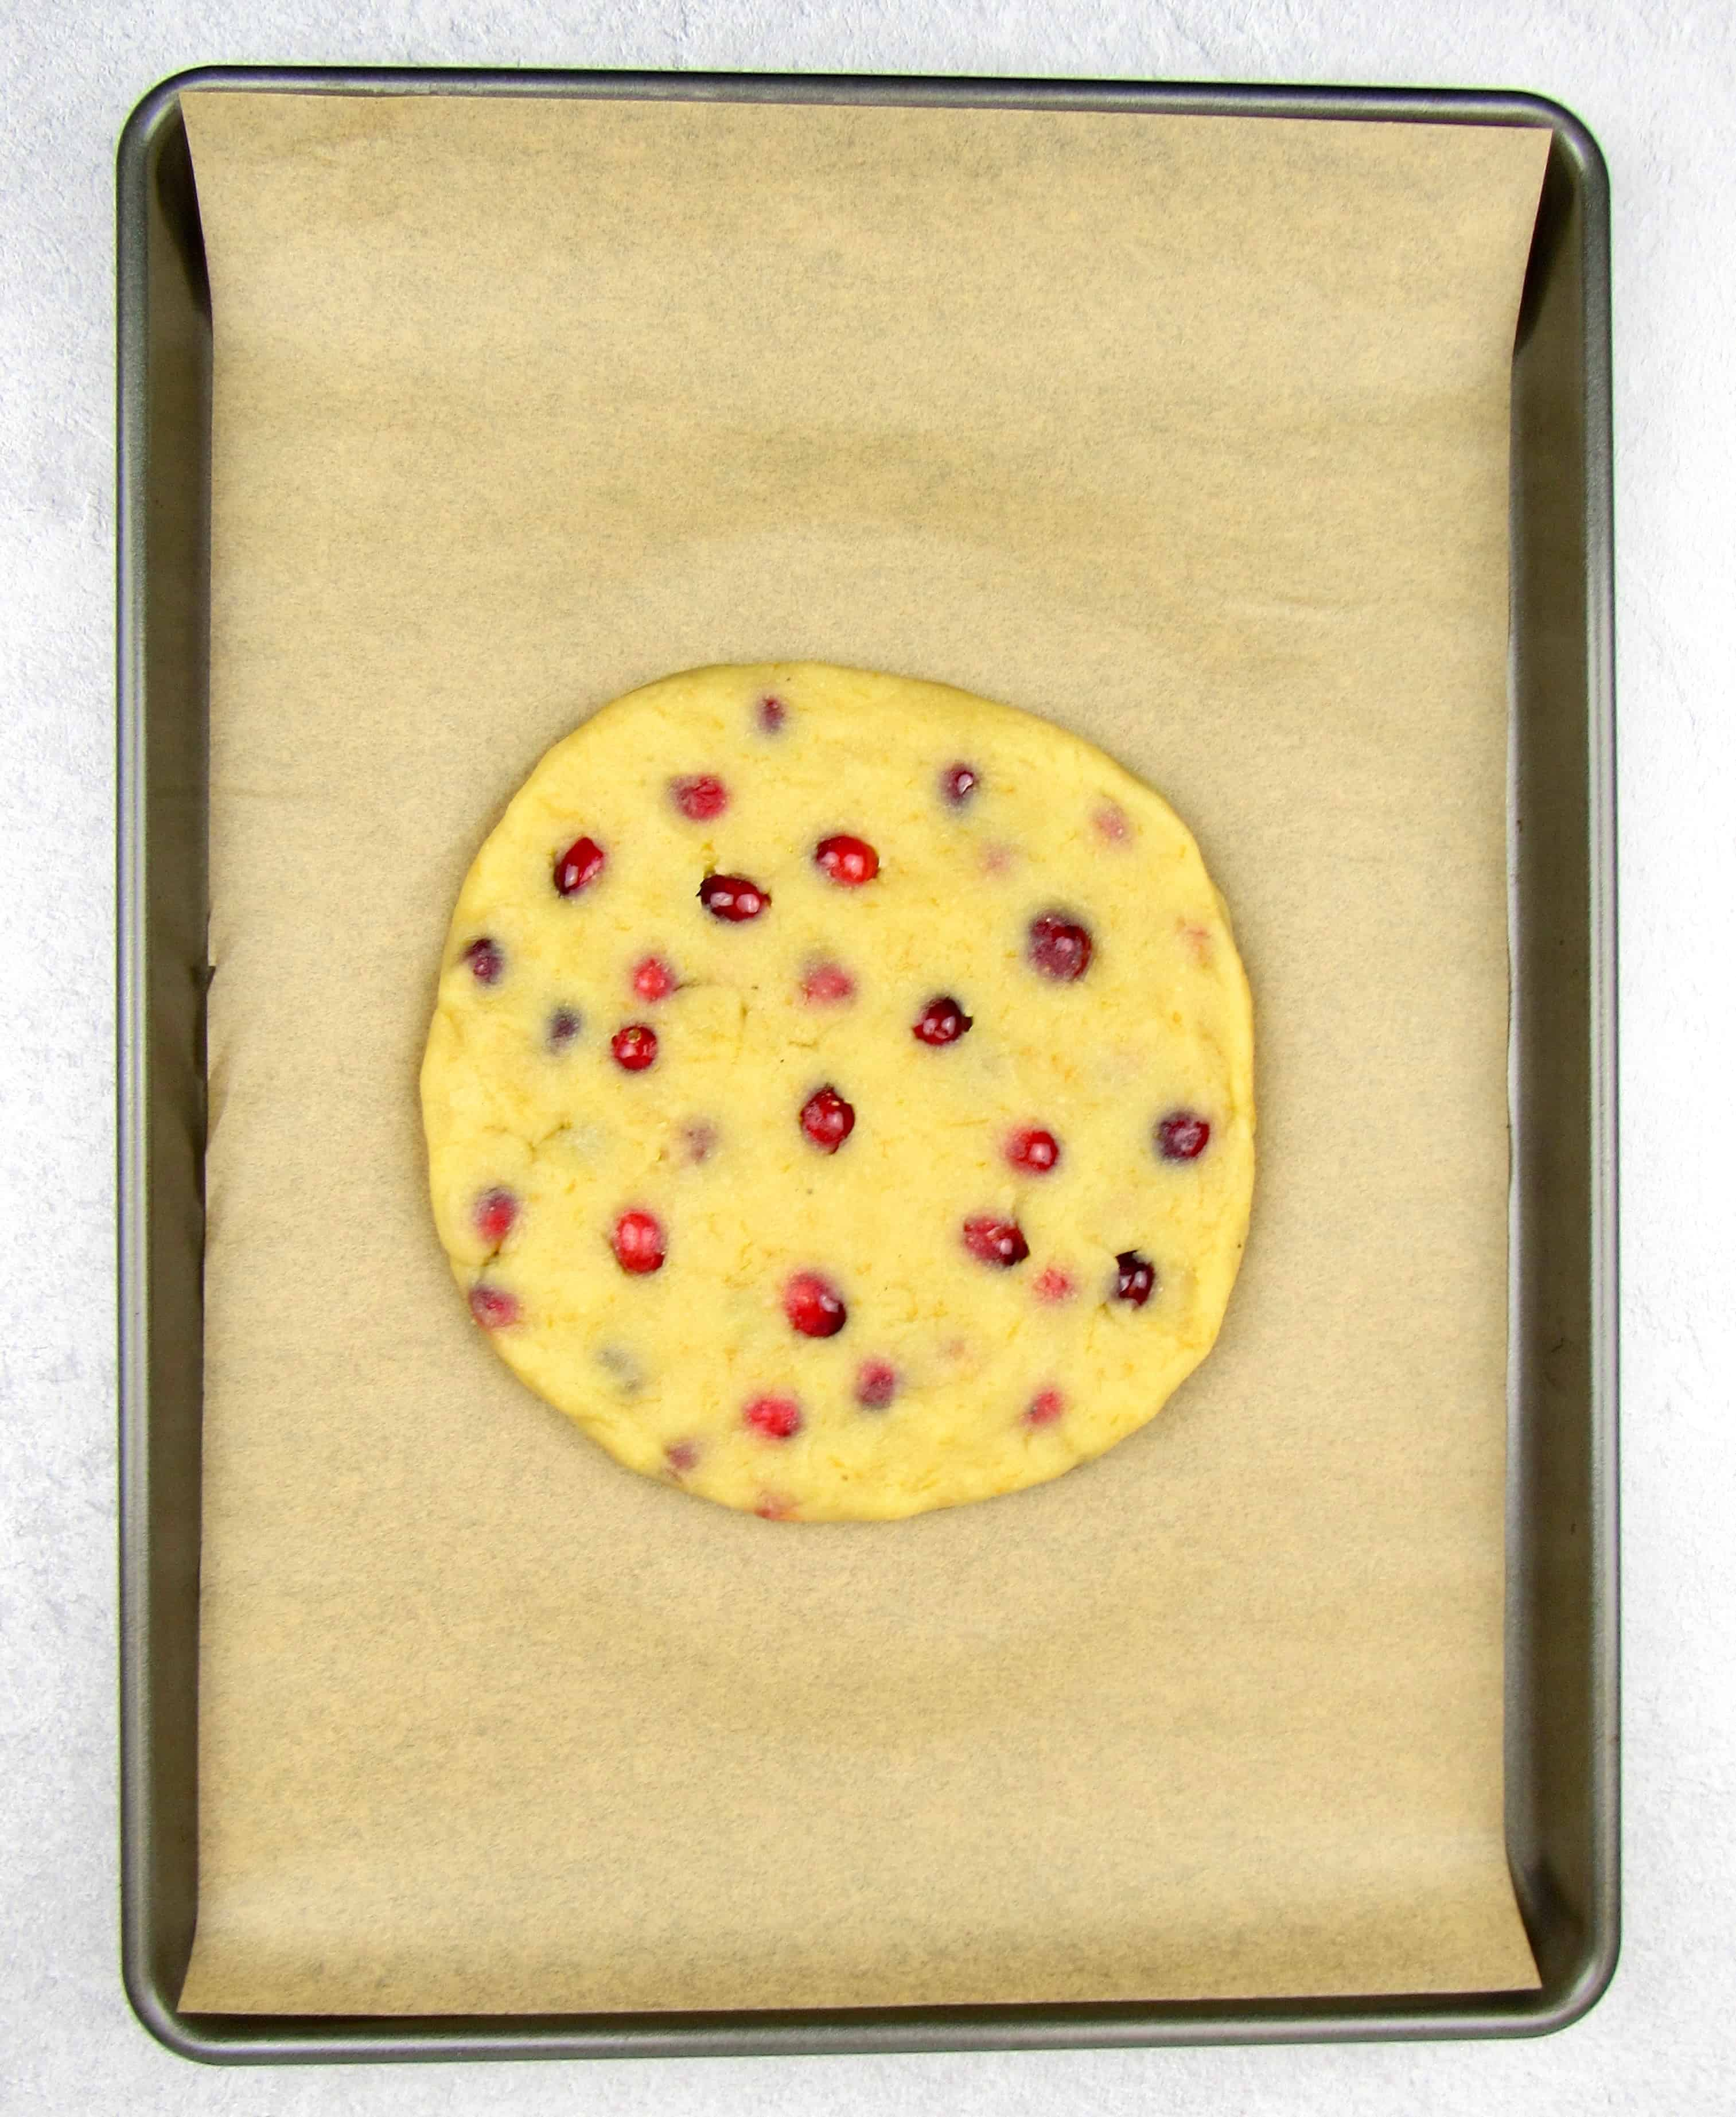 cranberry scones dough in a disc on sheet pan